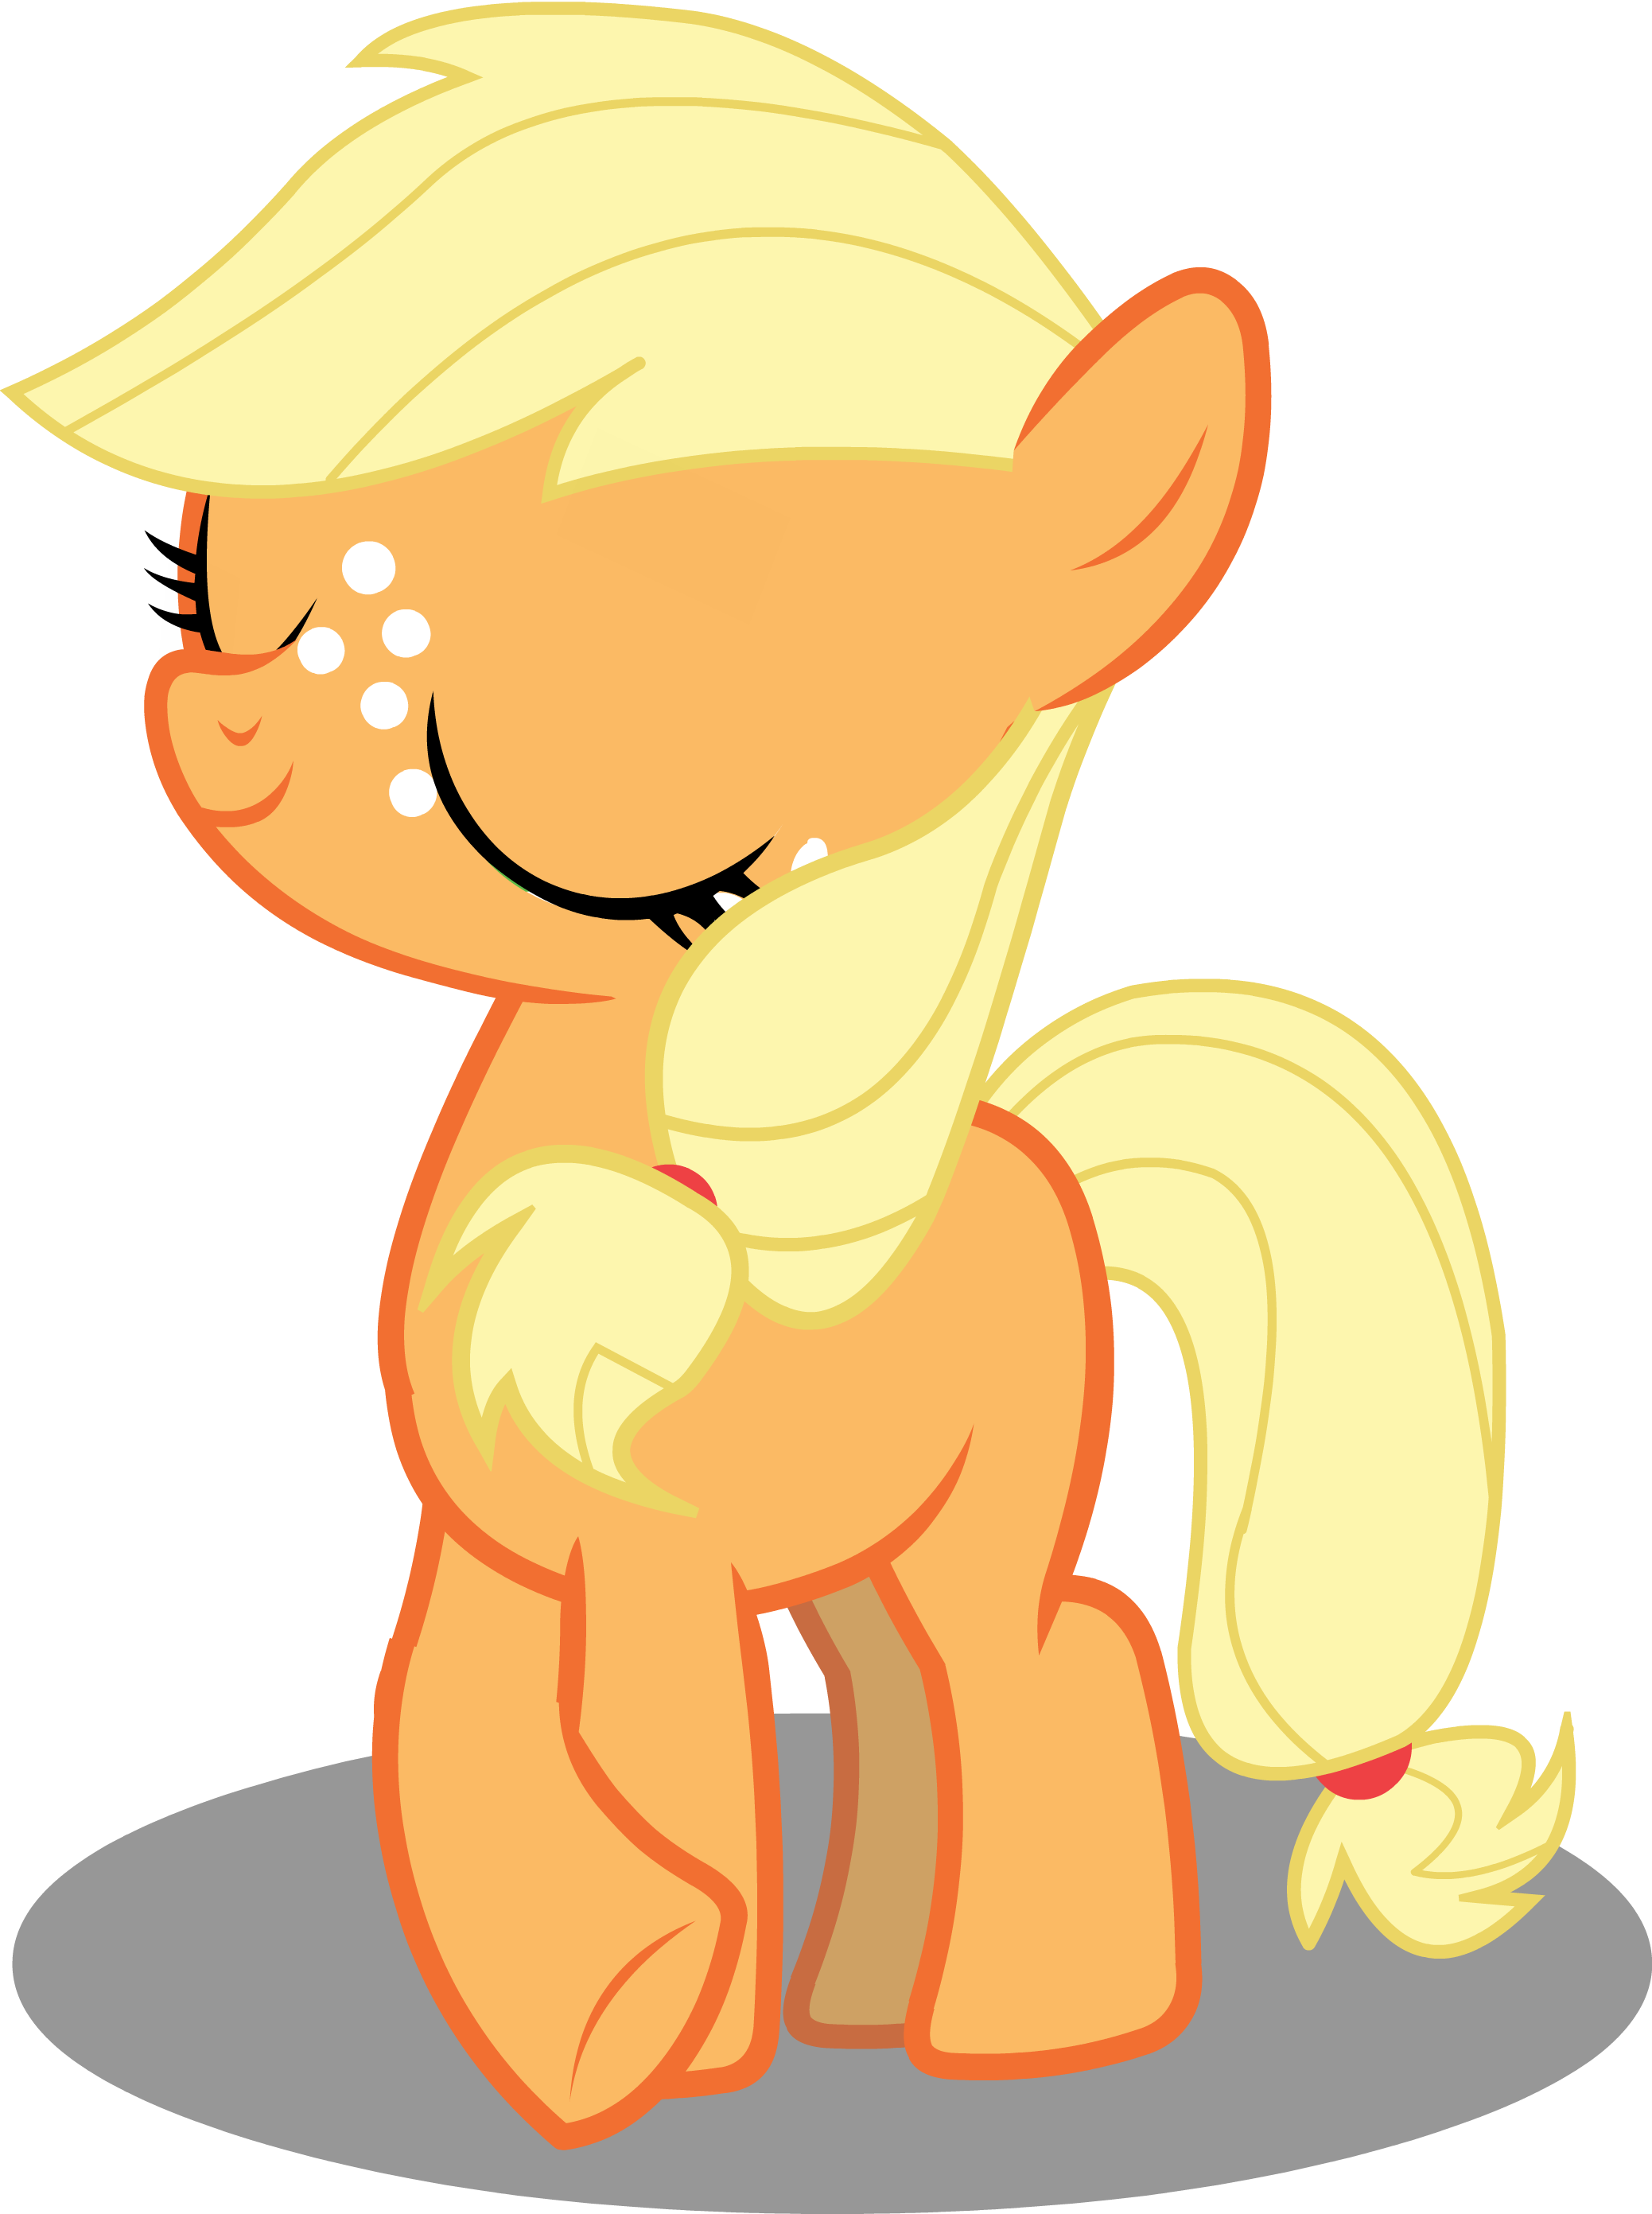 Applejack drawing pony horse. Mlp filly being ladylike